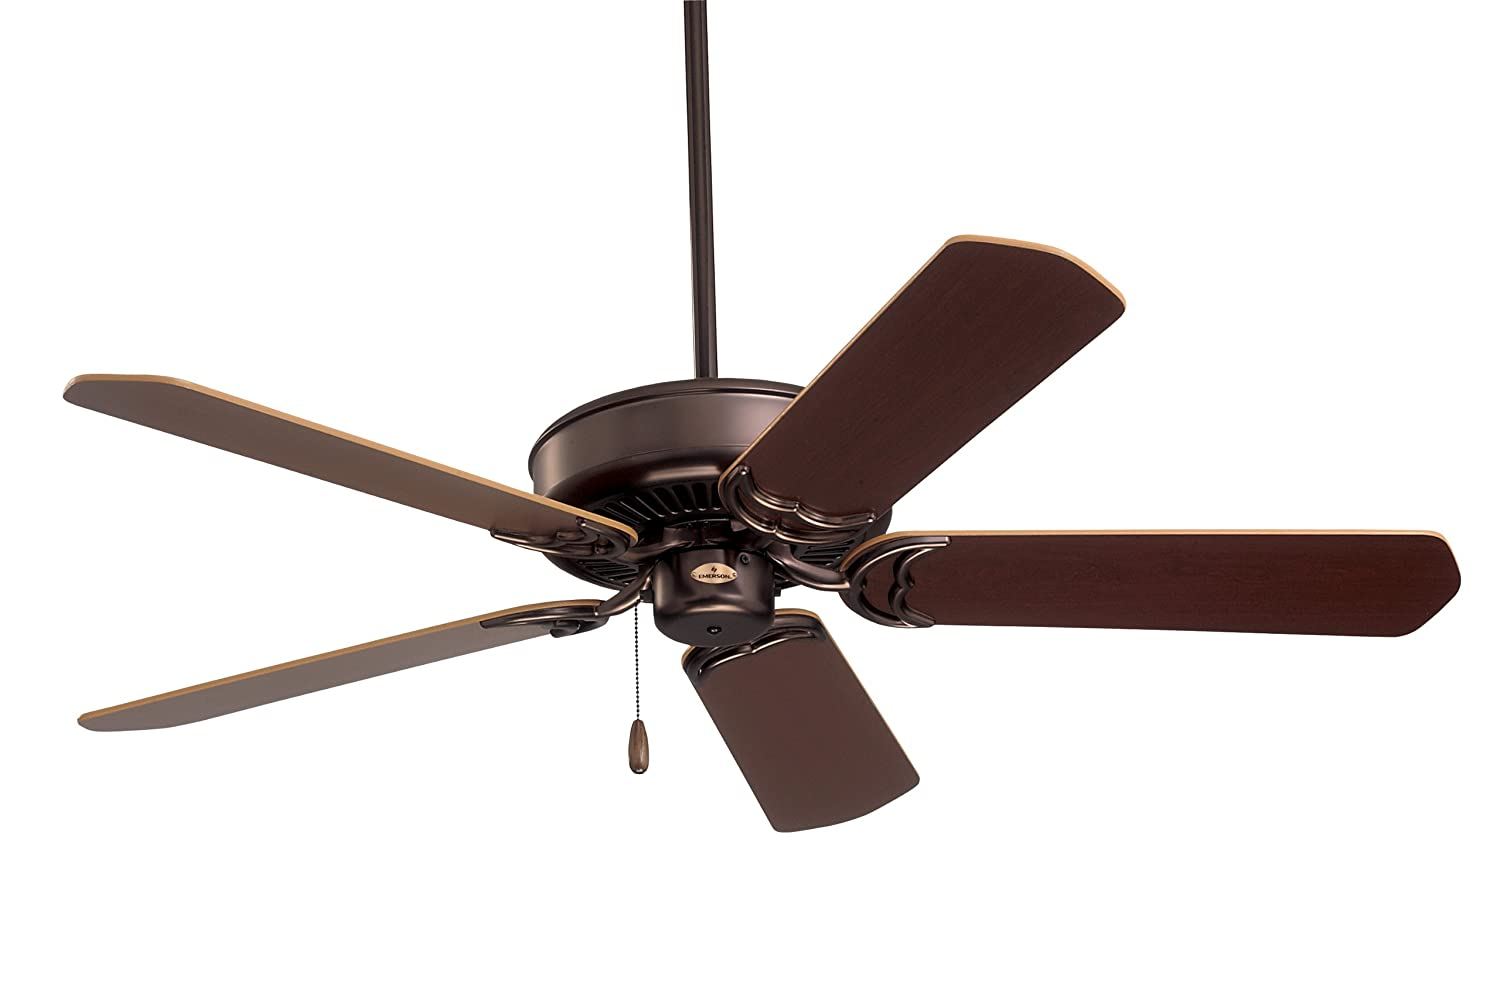 Emerson ceiling fans cf755ab designer 52 inch energy star ceiling emerson ceiling fans cf755ab designer 52 inch energy star ceiling fan light kit adaptable antique brass finish amazon aloadofball Choice Image